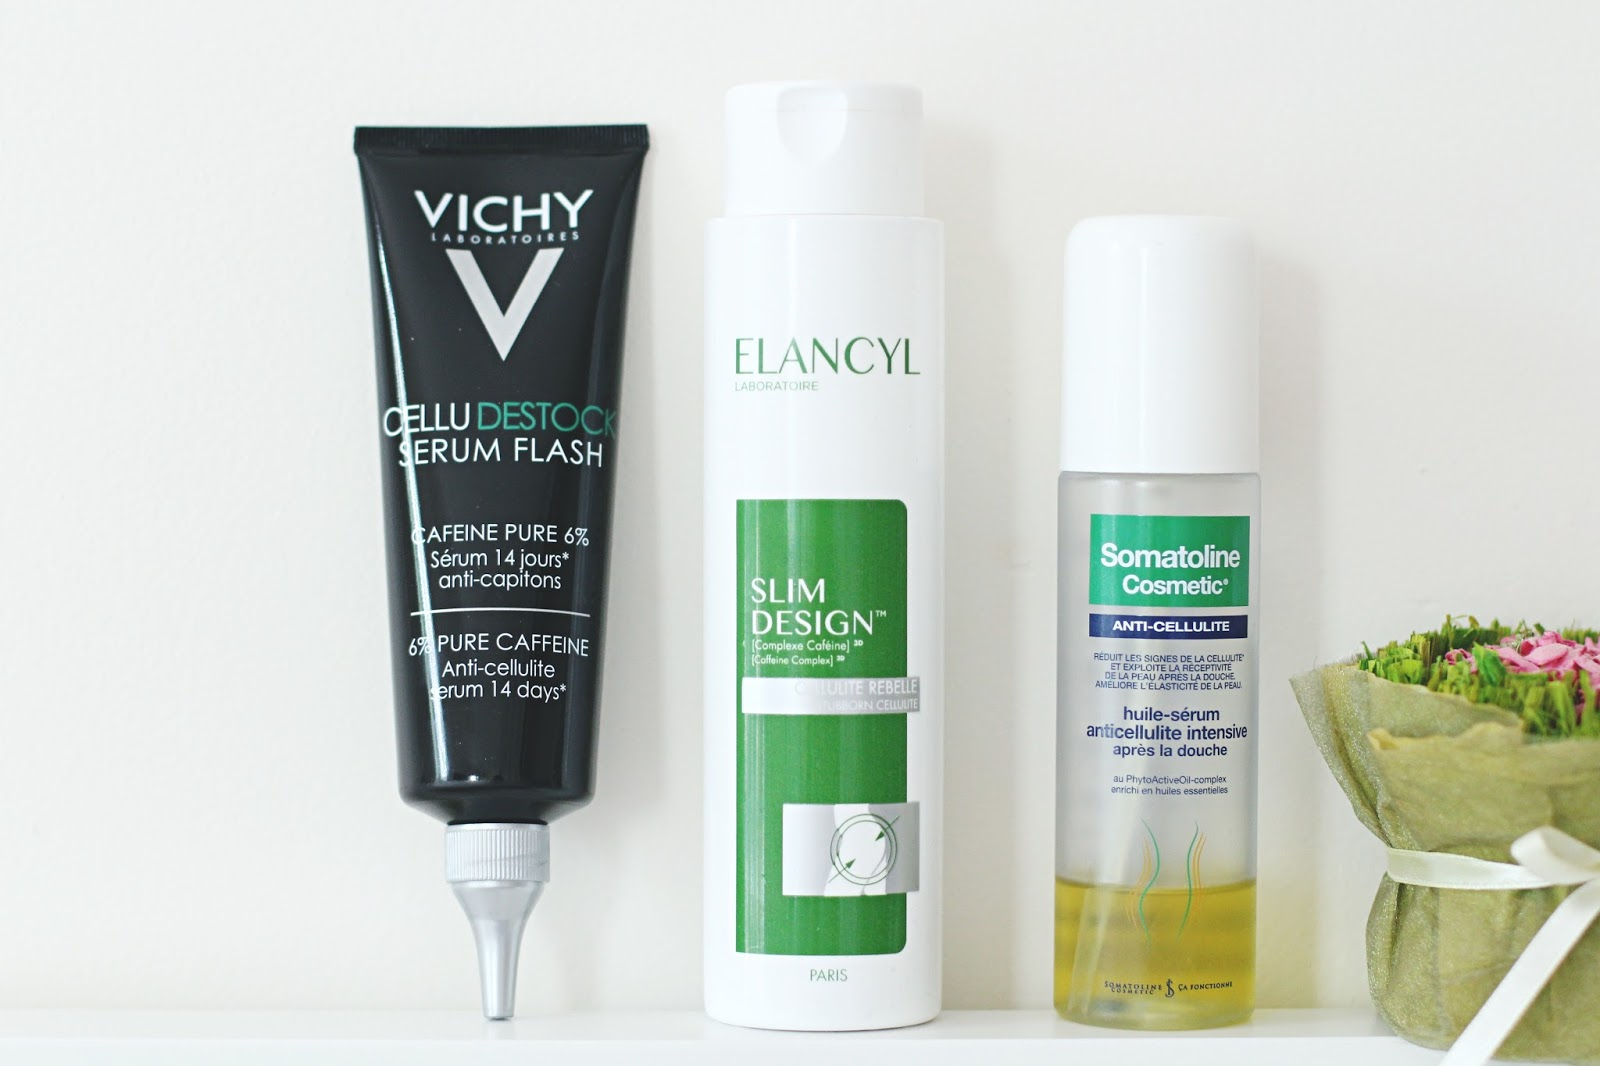 Vichy Cellu Destock Serum Flash Liposculpture